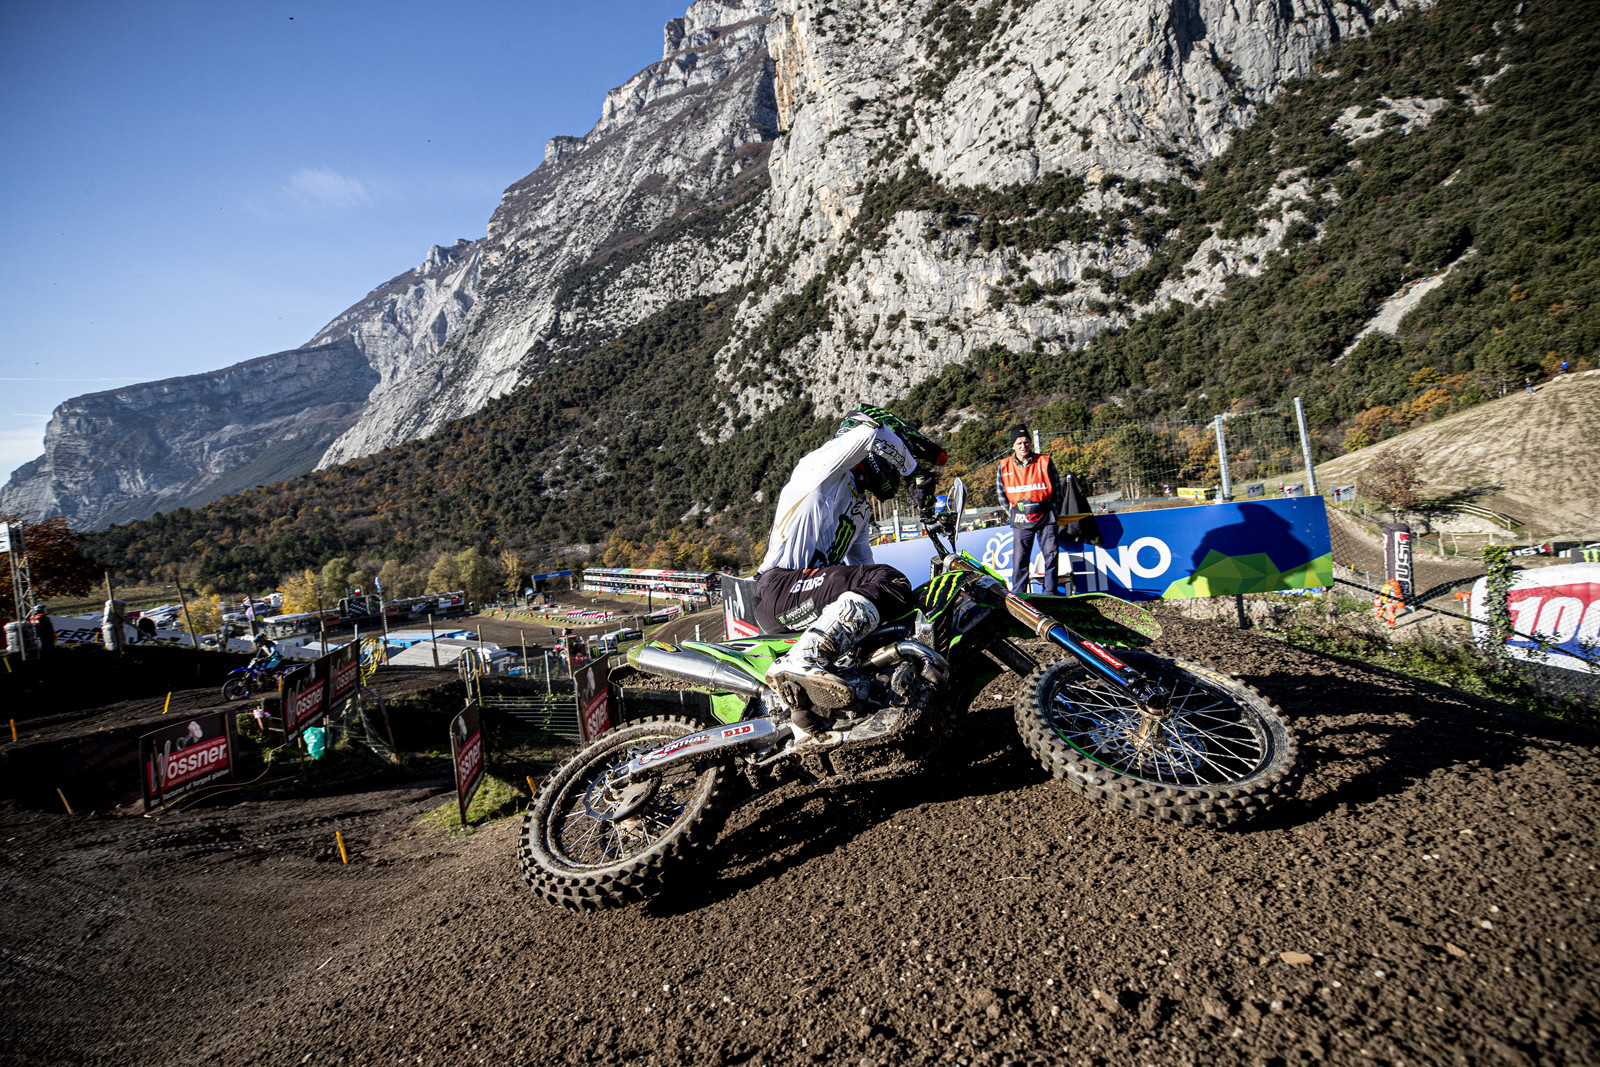 As the last race of the 2020 MXGP season, it is bittersweet for two of the long-time racers. Both Clement Desalle and Gautier Paulin announced their retirement.